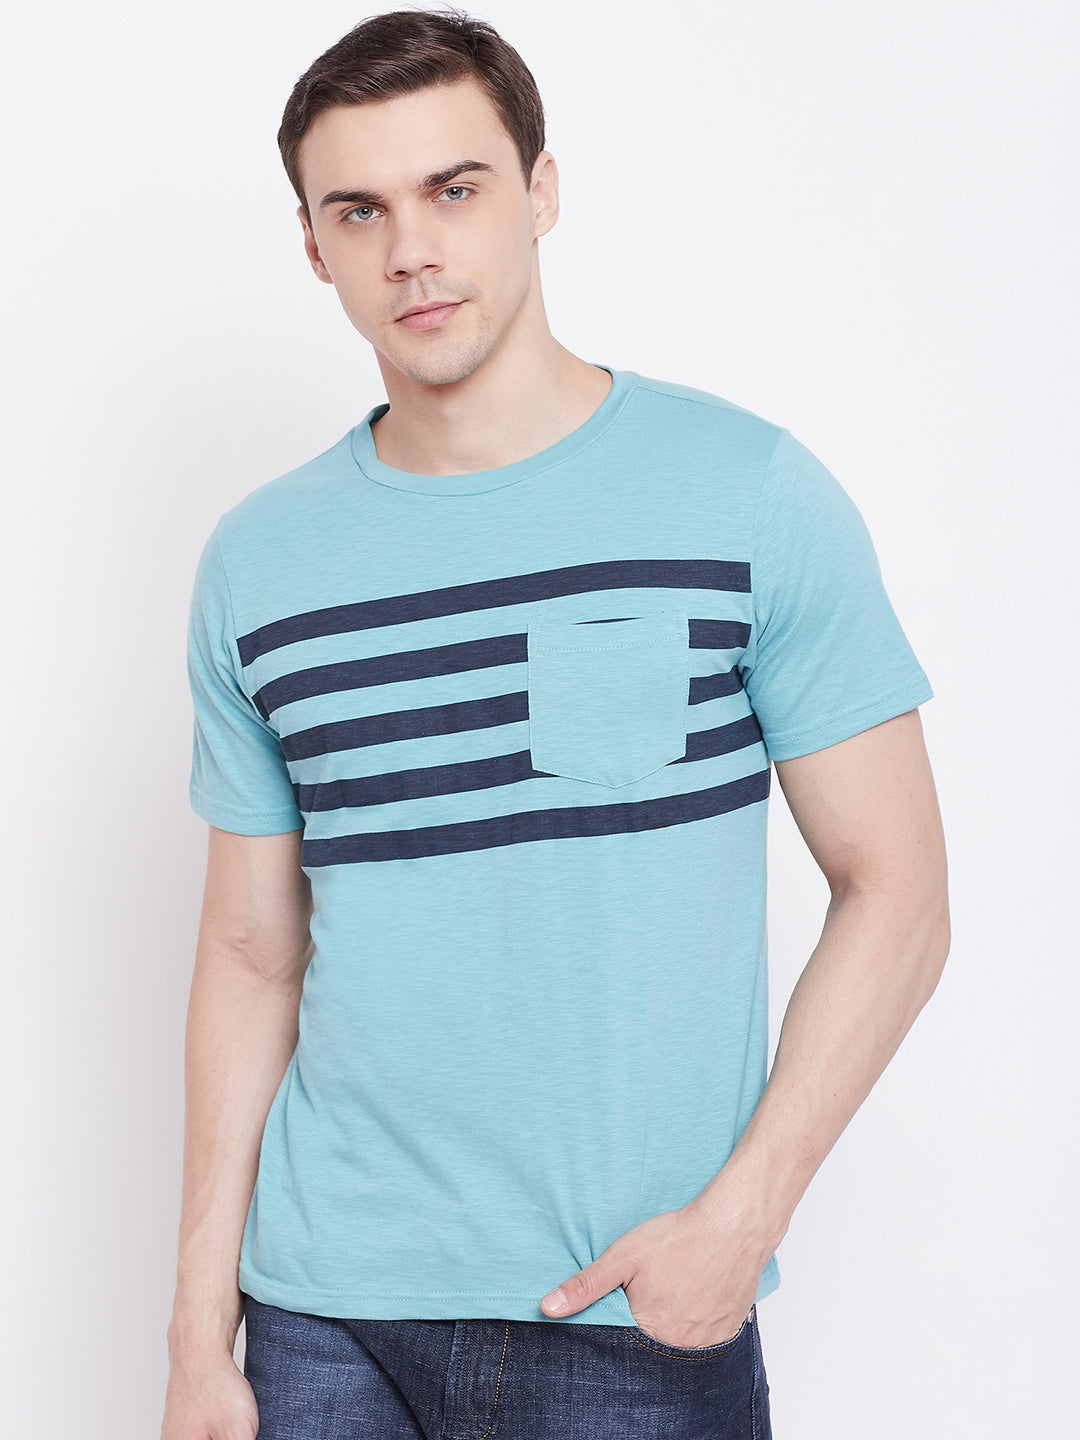 JUMP USA Men Blue Striped Round Neck T-shirt